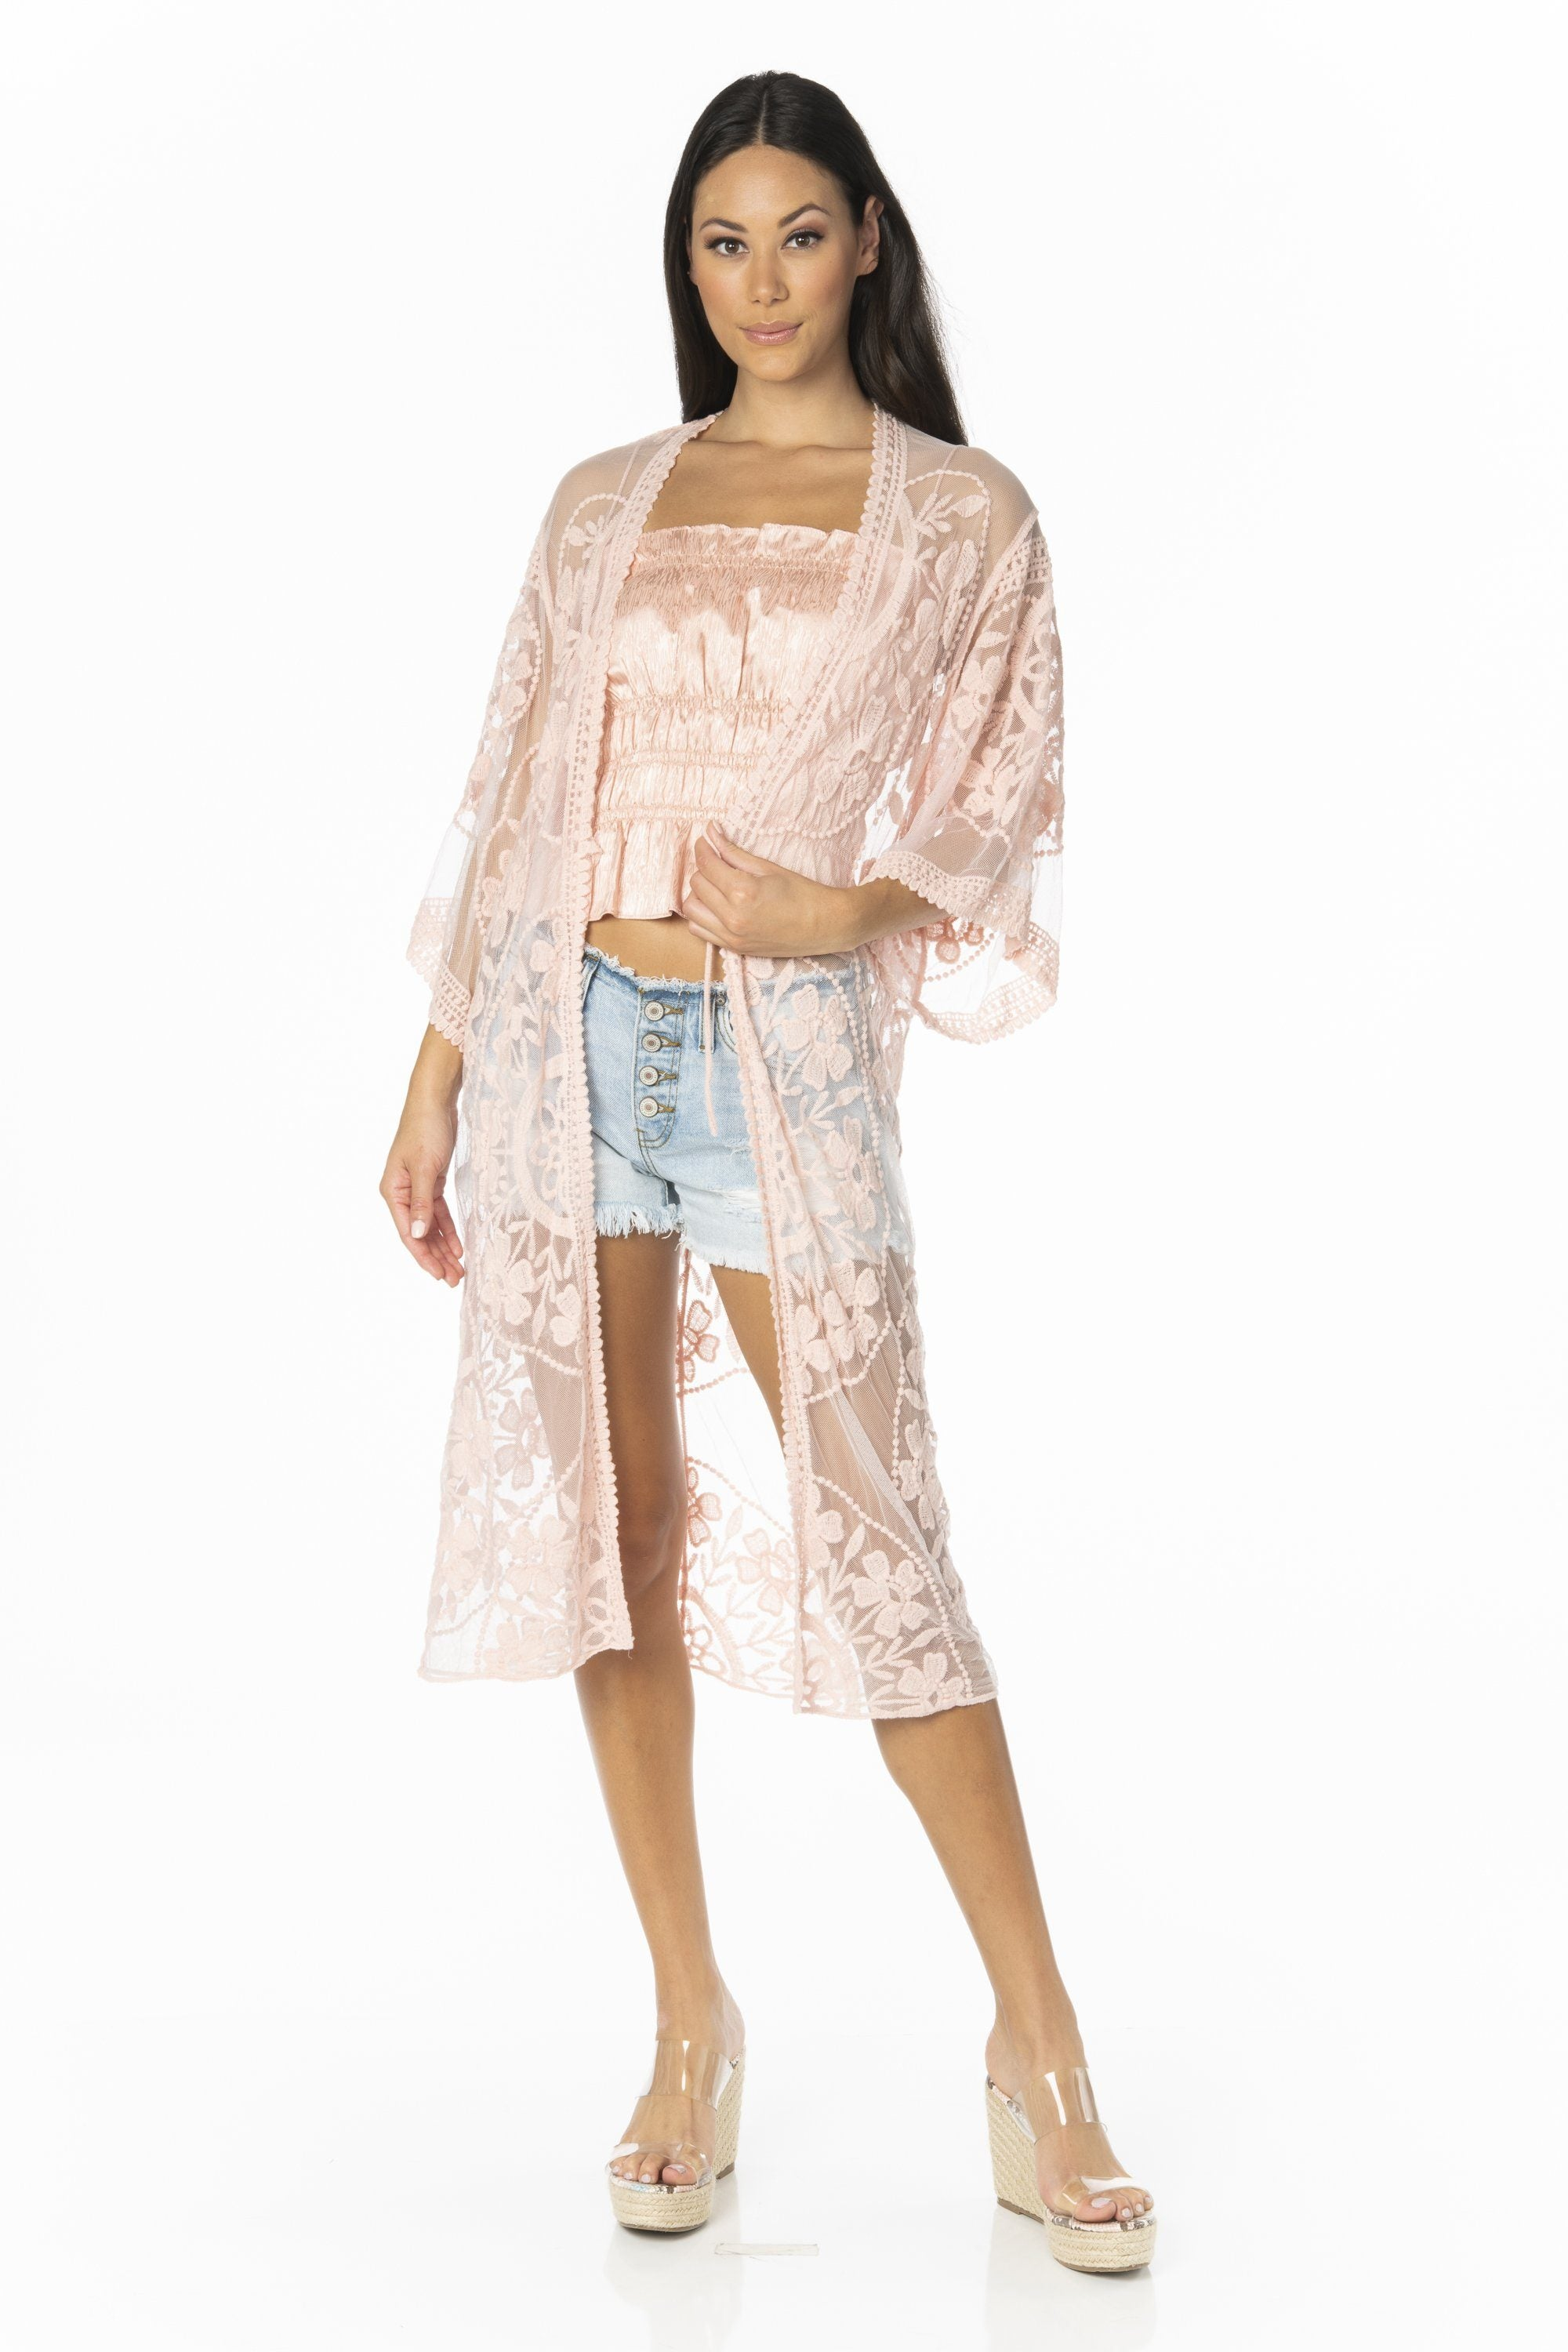 Sheer Mesh & Floral Embroidered Cover Up Swimwear HYPEACH BOUTIQUE